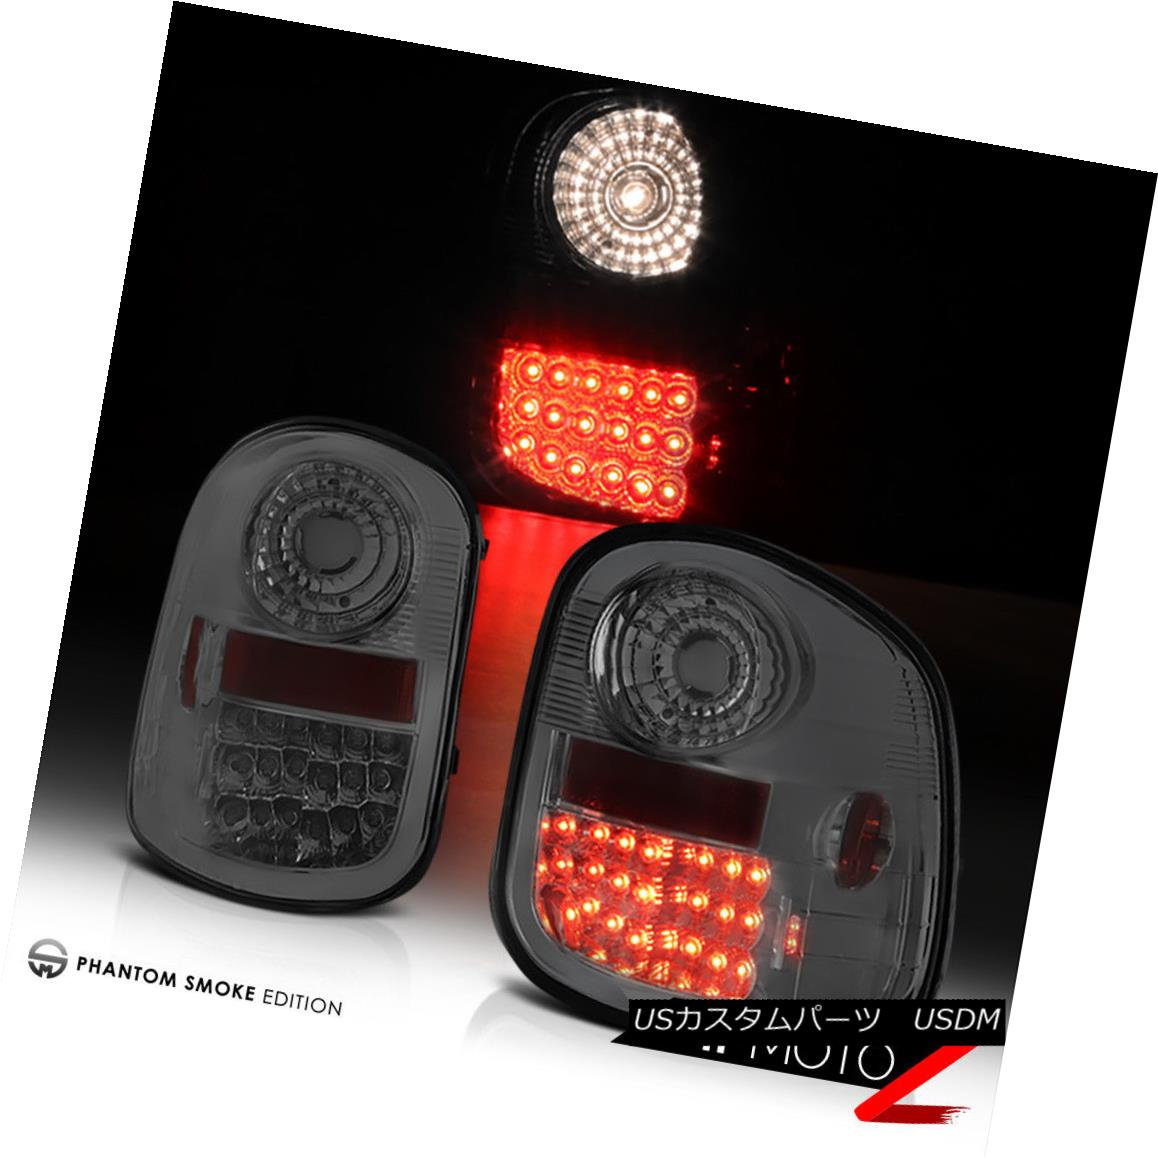 テールライト 97-03 Ford Flare-side 150 LED {SMOKING CHROME} Tail Light Rear Brake Lamp Pair 97-03 Ford Flare-side 150 LED {喫煙用クローム}テールライトリアブレーキランプペア